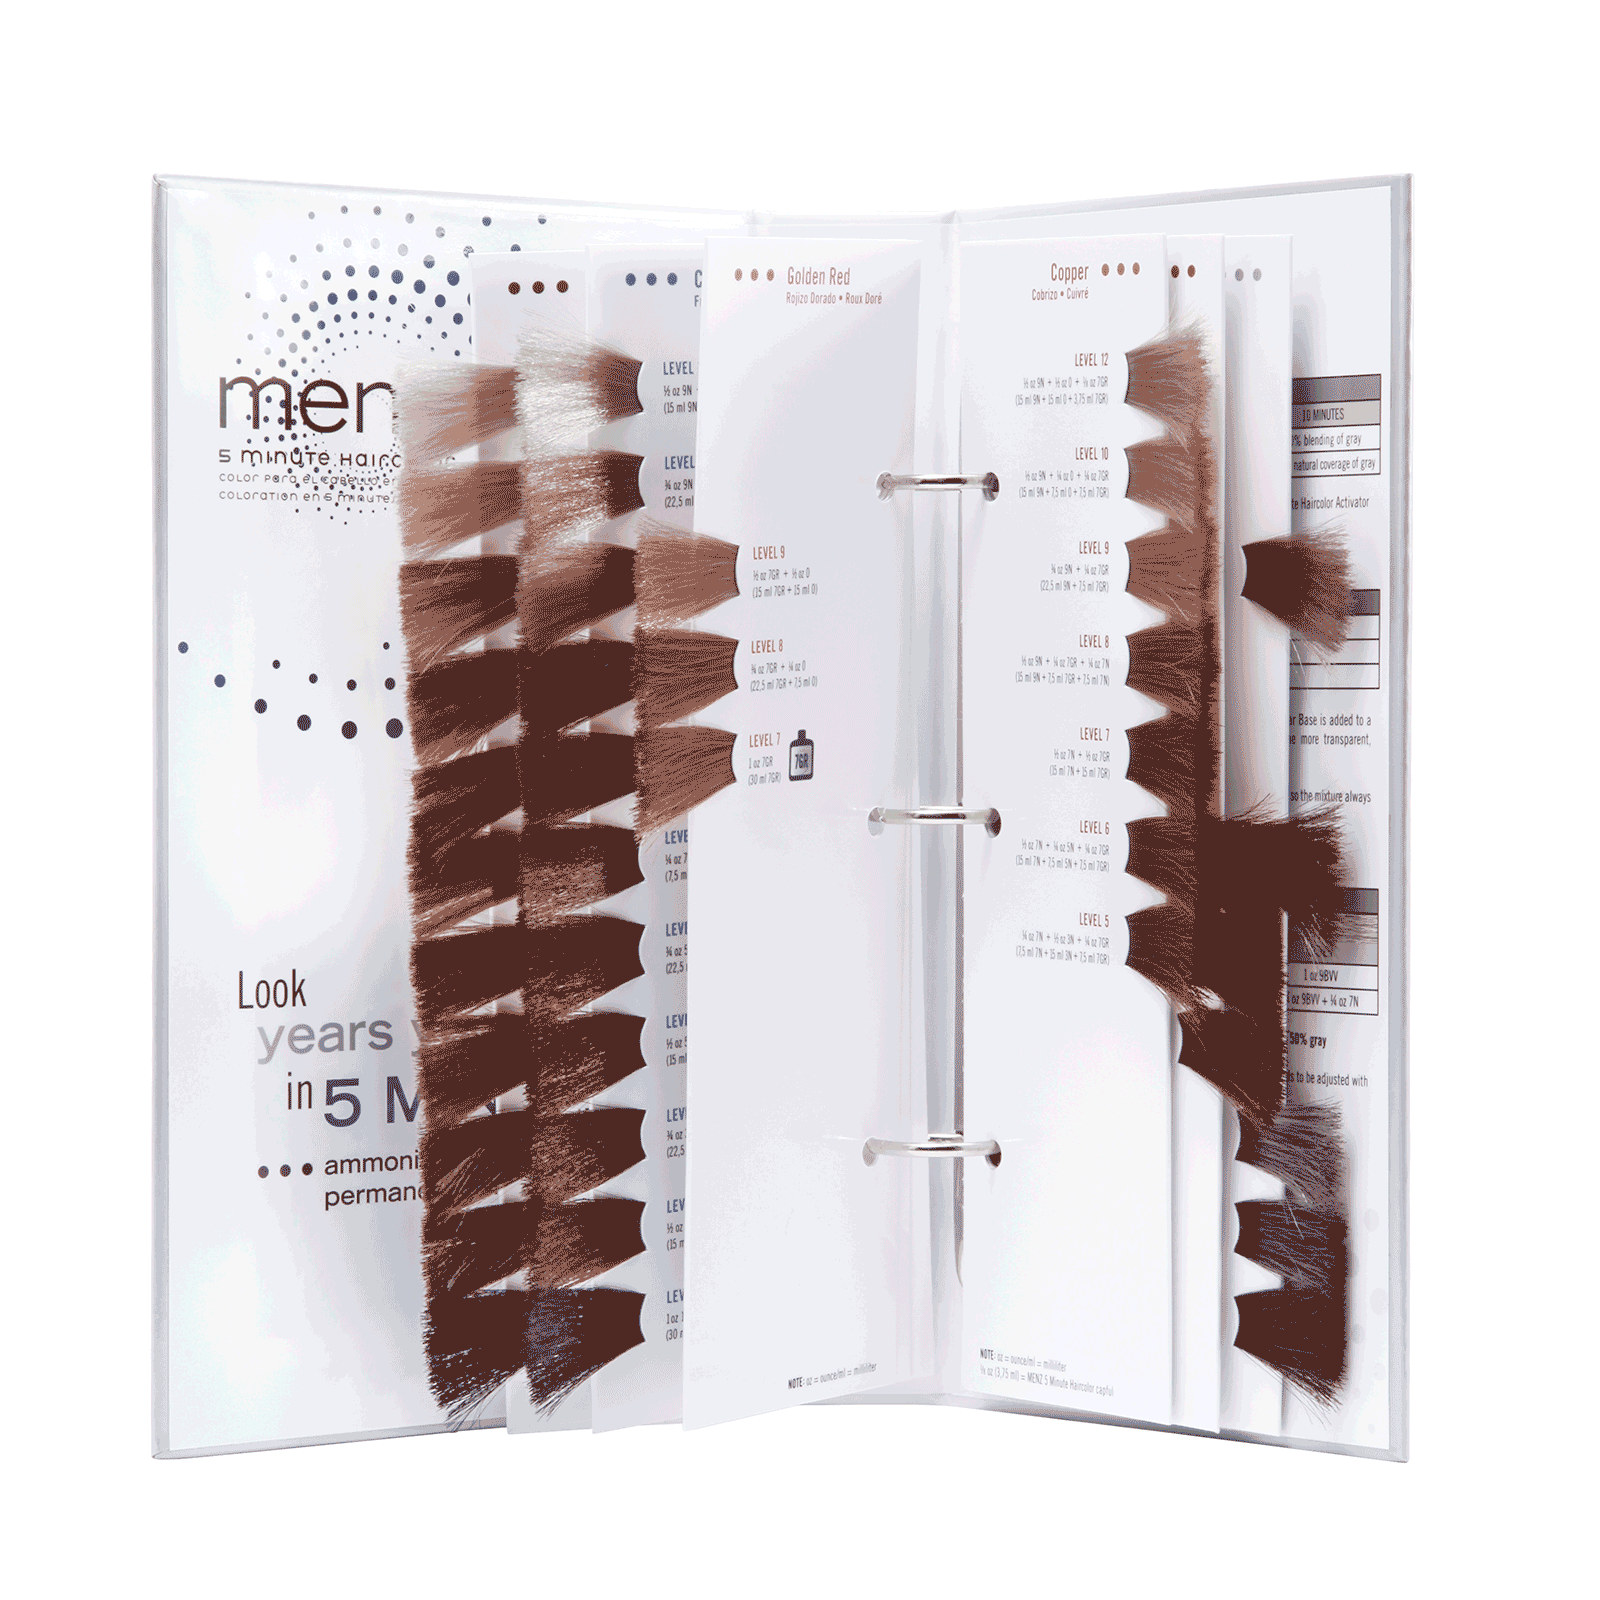 5 minute haircolor swatch book - Hair Color Swatch Book